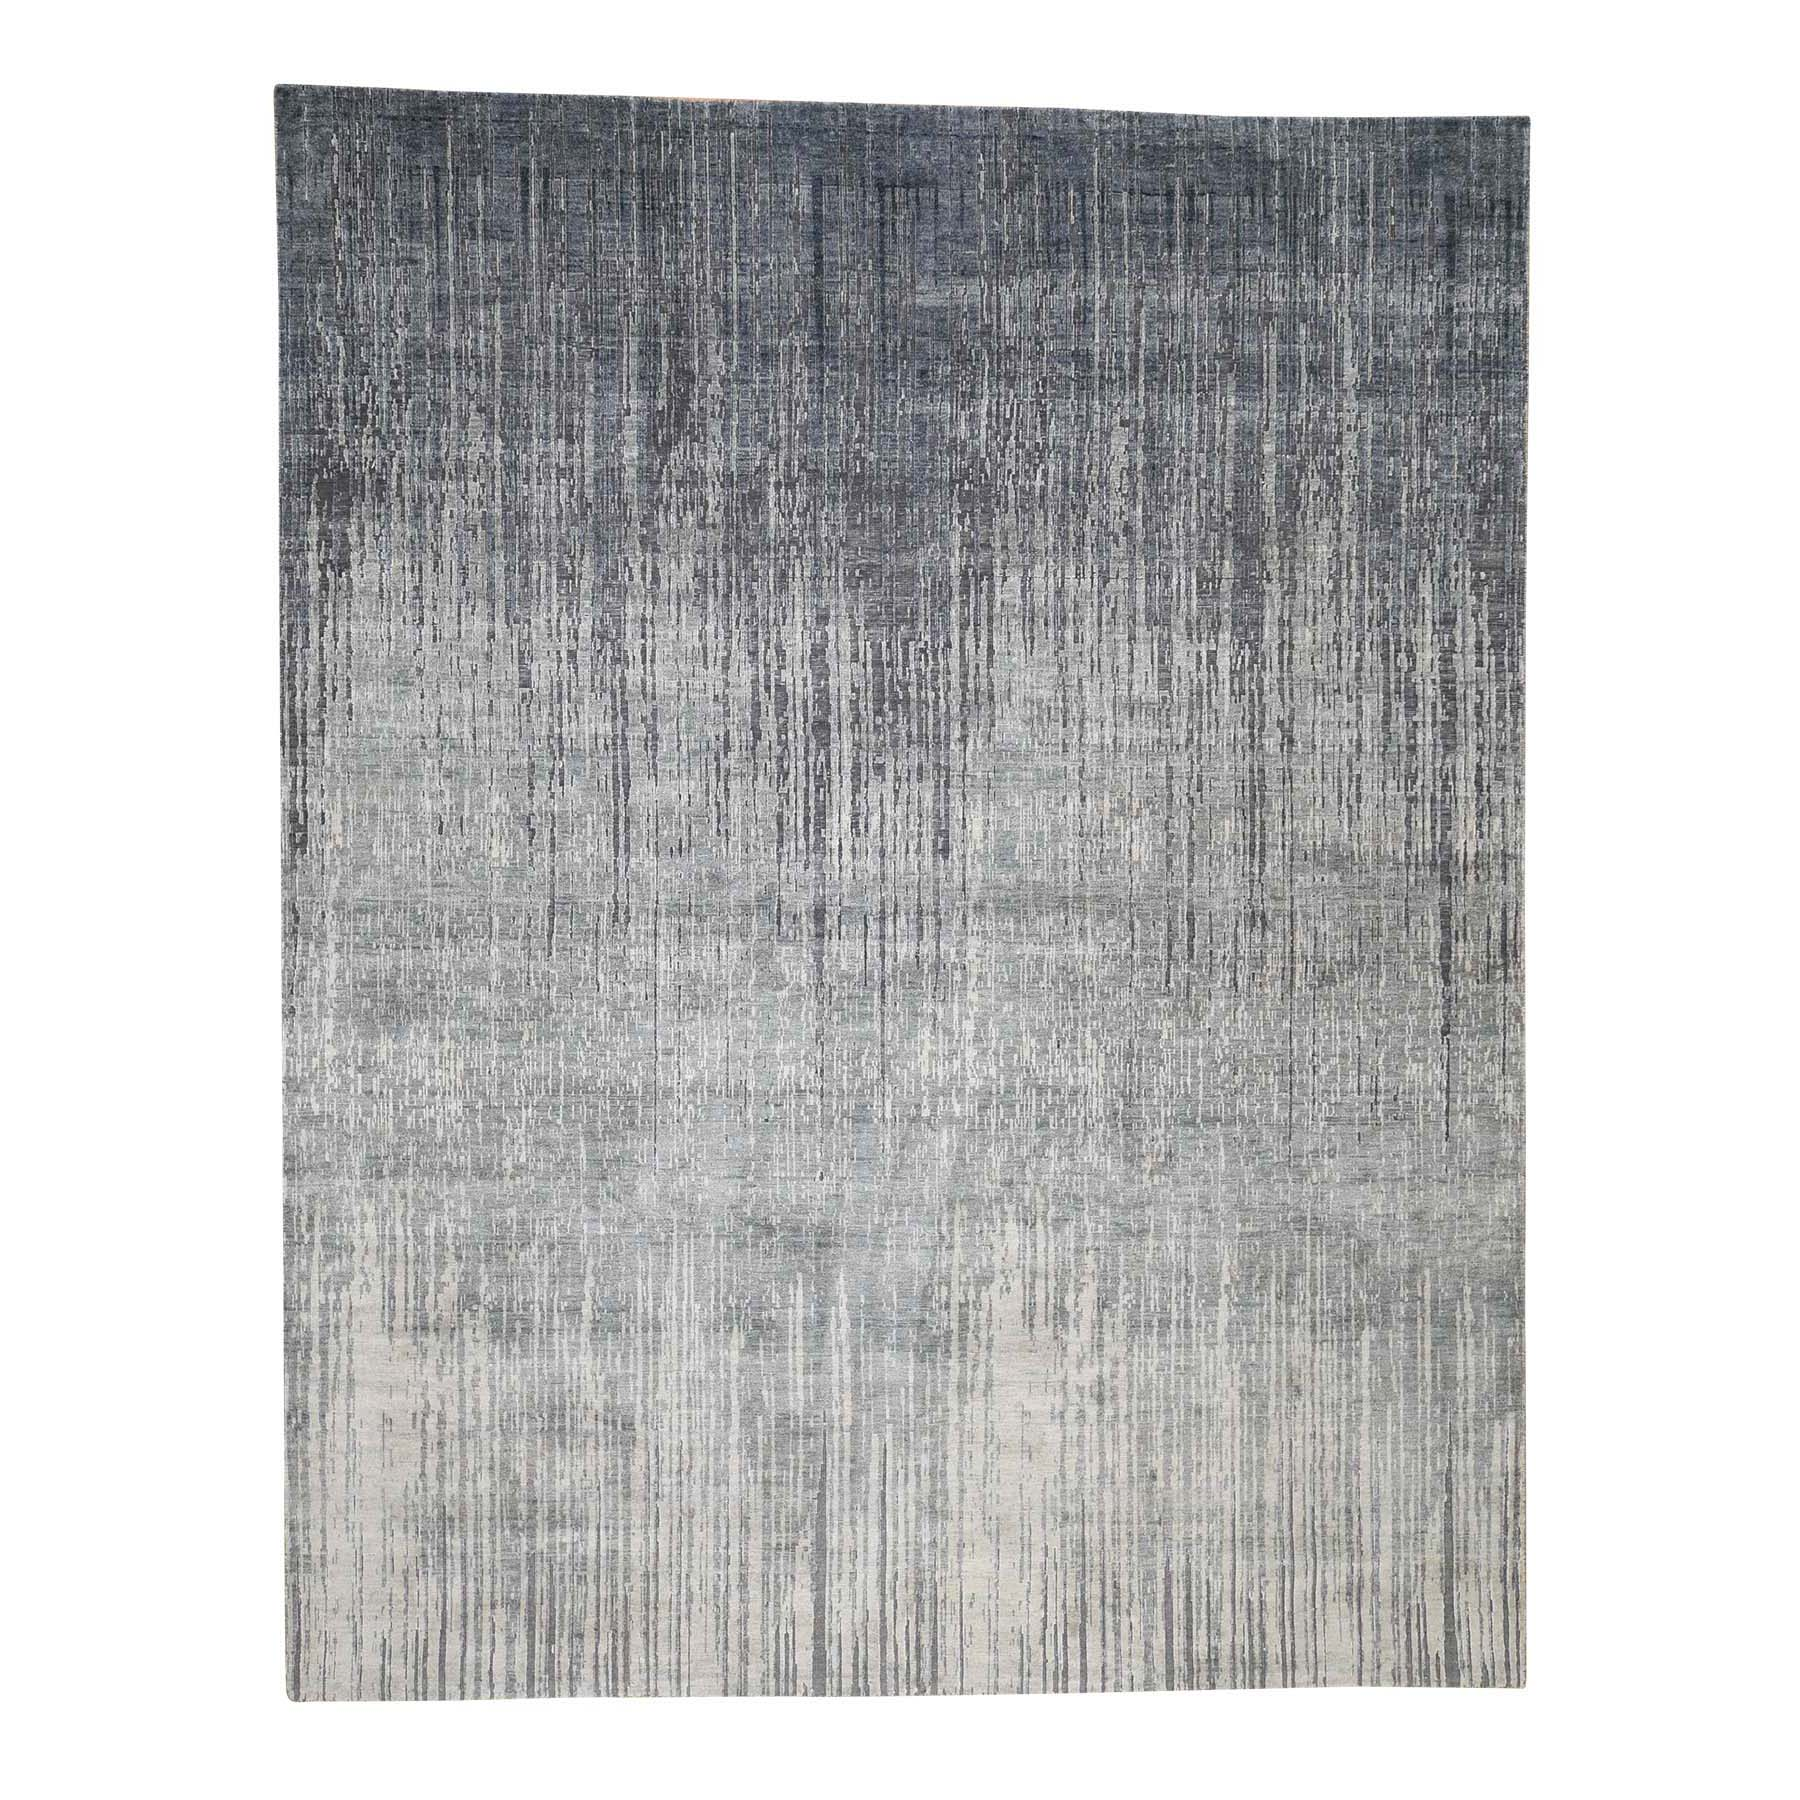 Mid Century Modern Collection Hand Knotted Grey Rug No: 0186822